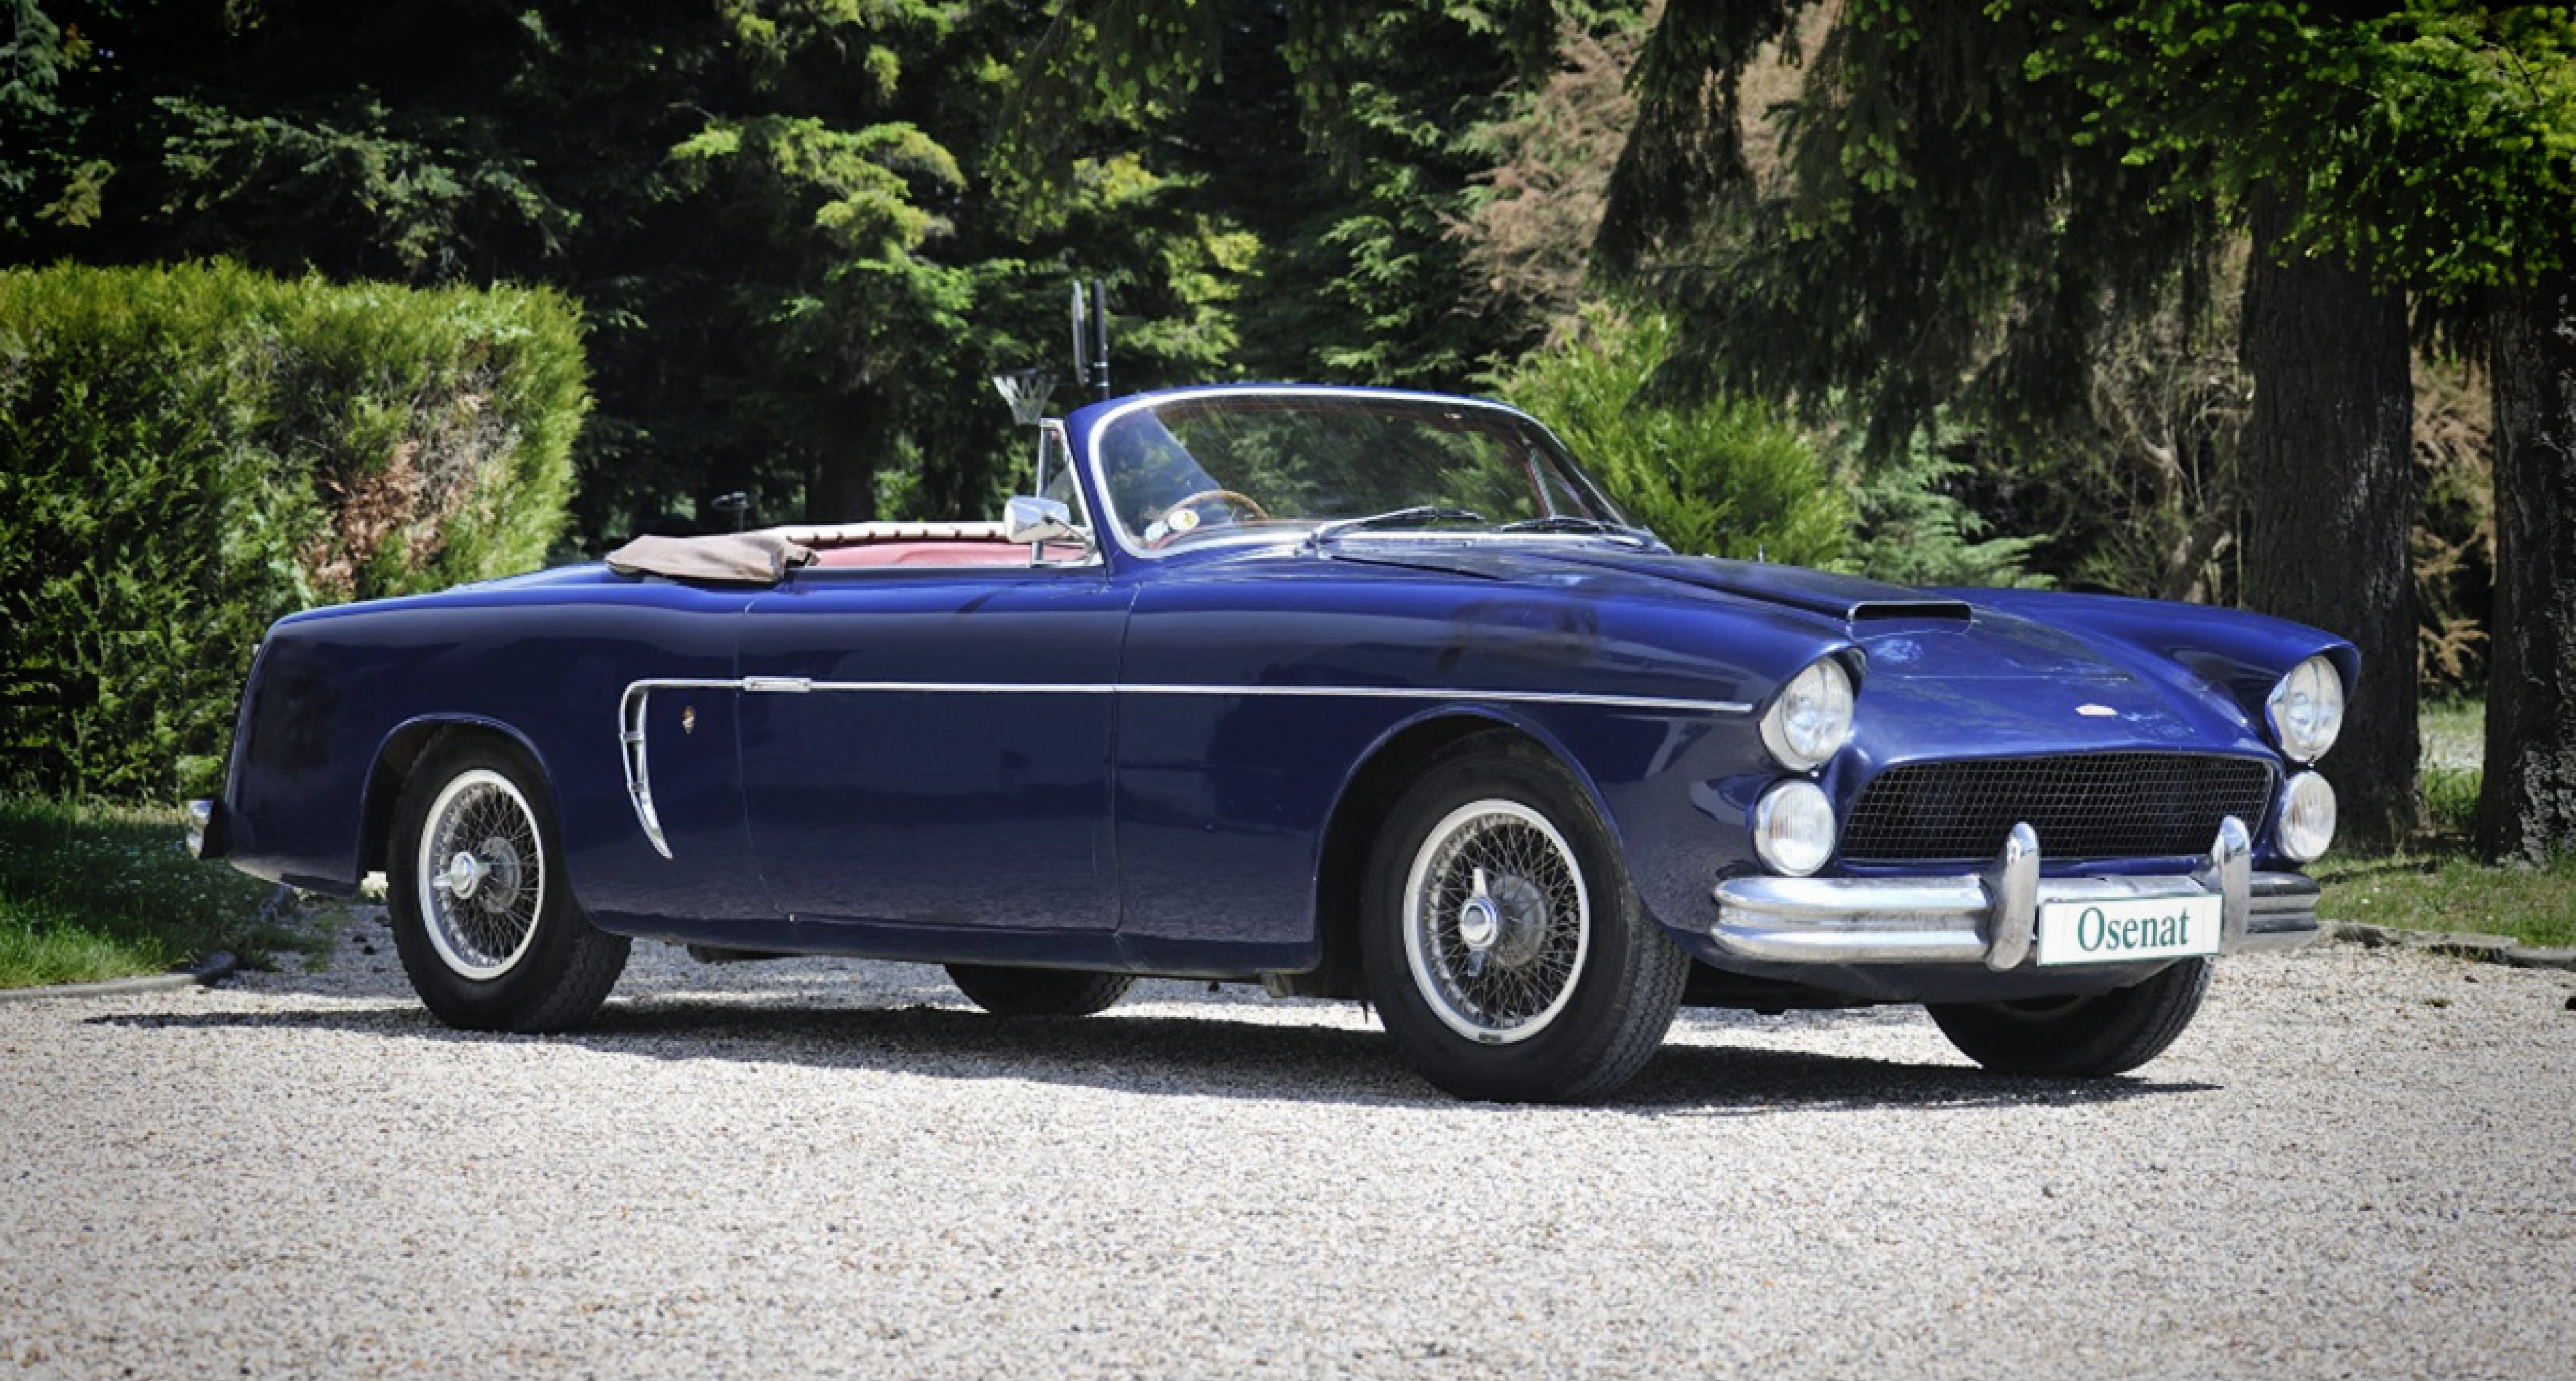 1954 Jaguar Mark VII Ghia-Aigle - Osenat at the Grand Parquet auction 2014